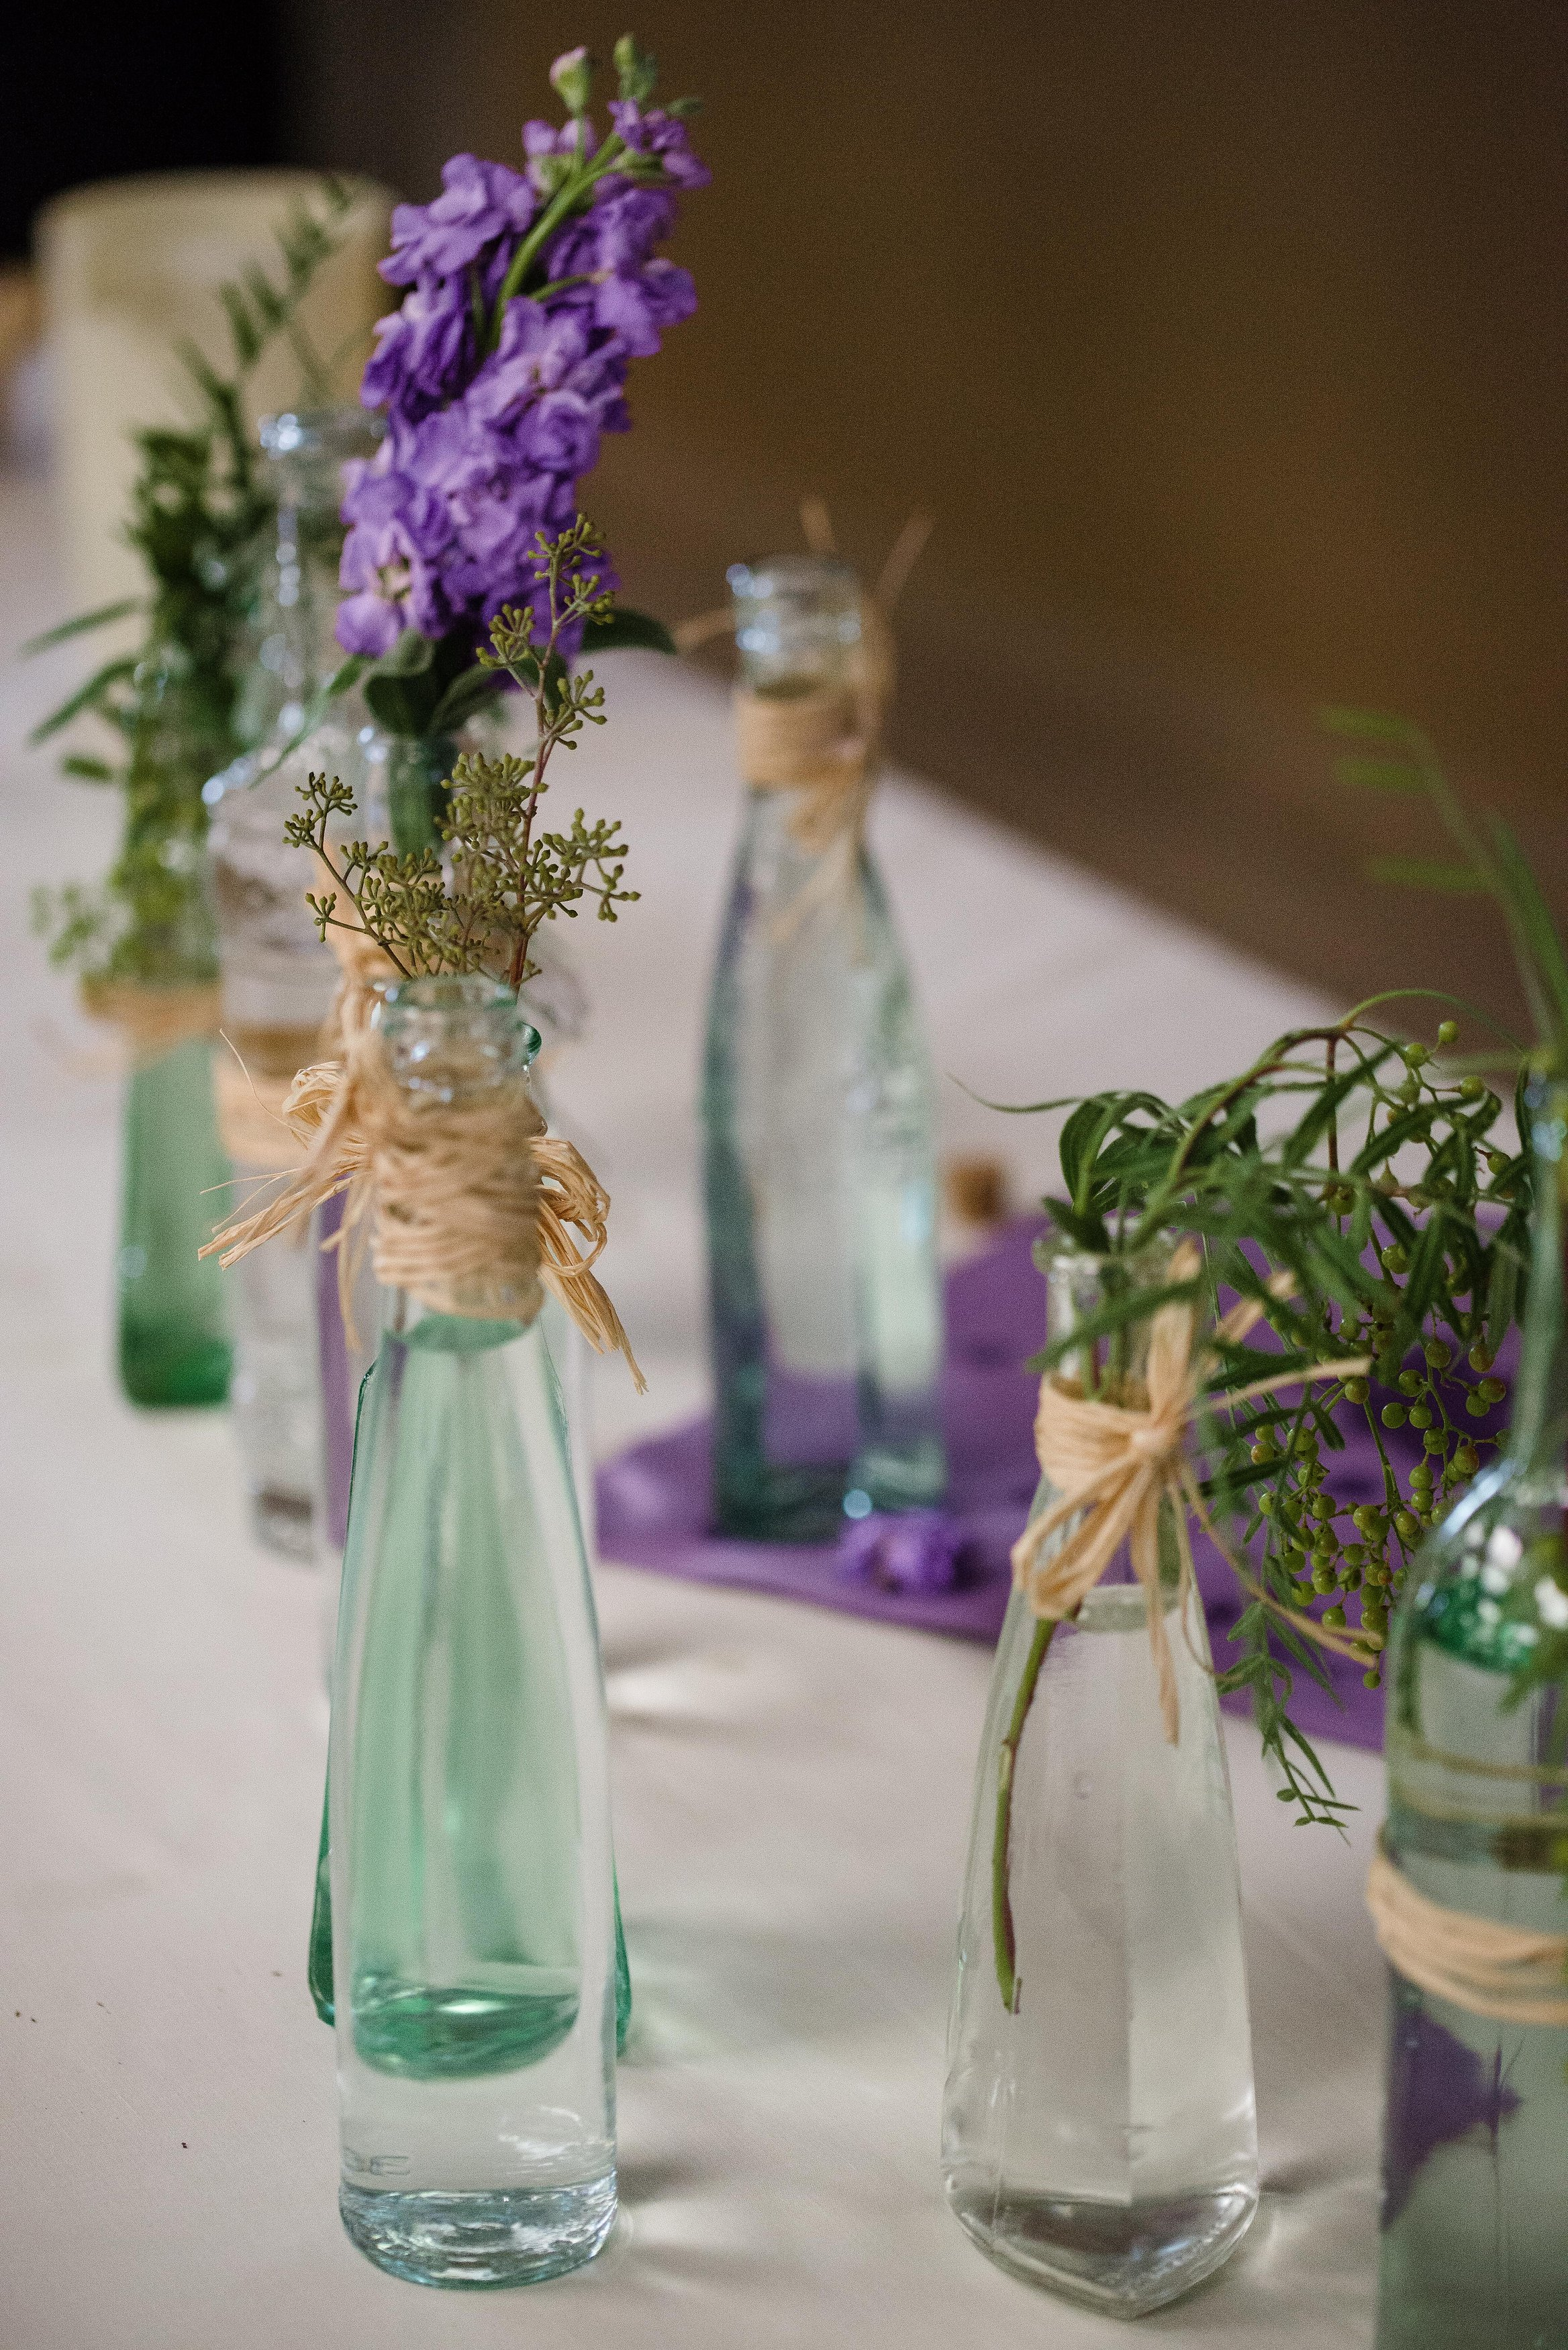 Vases with Flowers